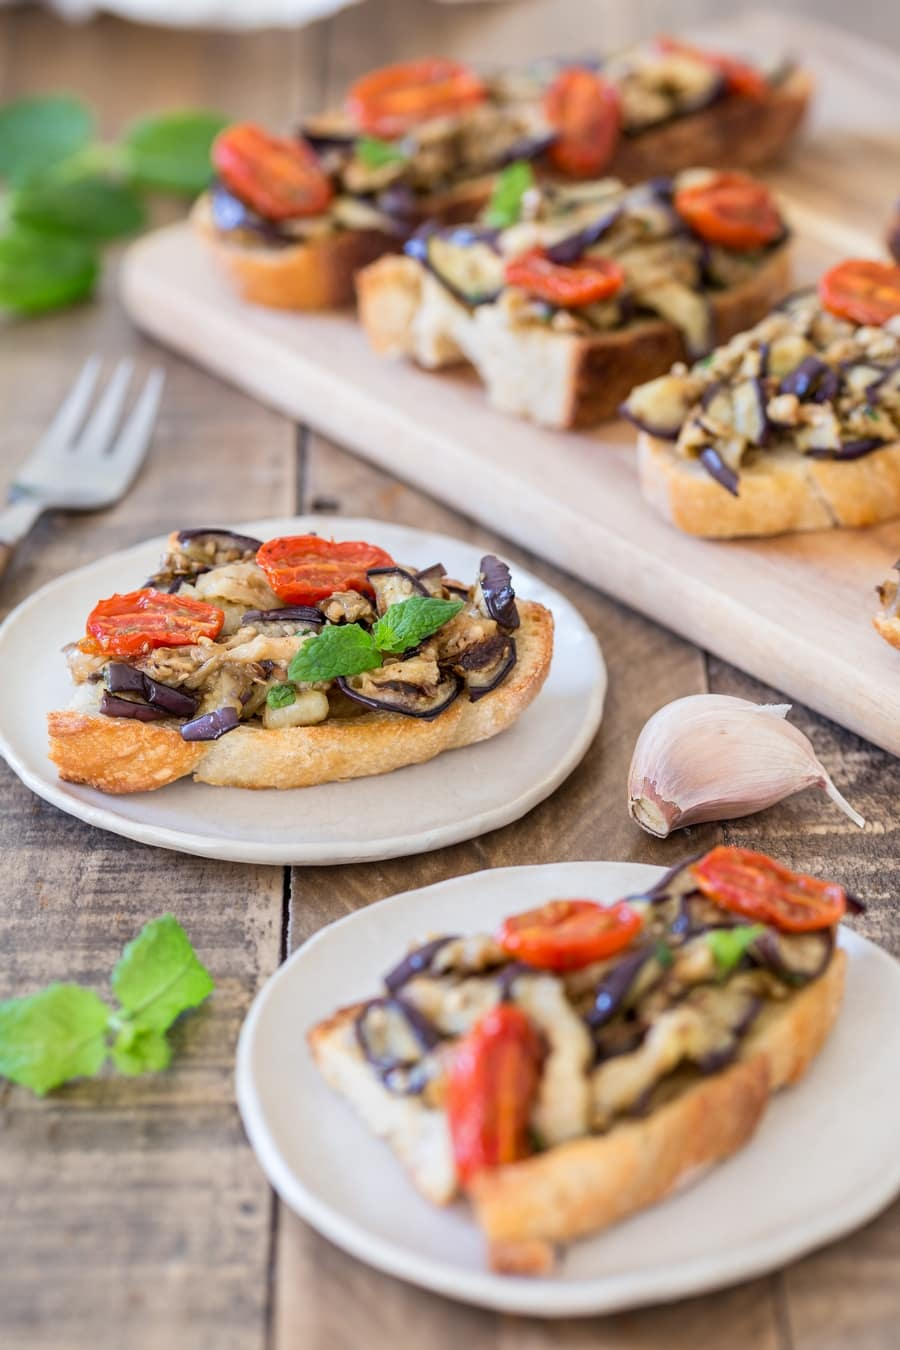 Slices of toasted bread topped with grilled eggplants and roasted cherry tomatoes.